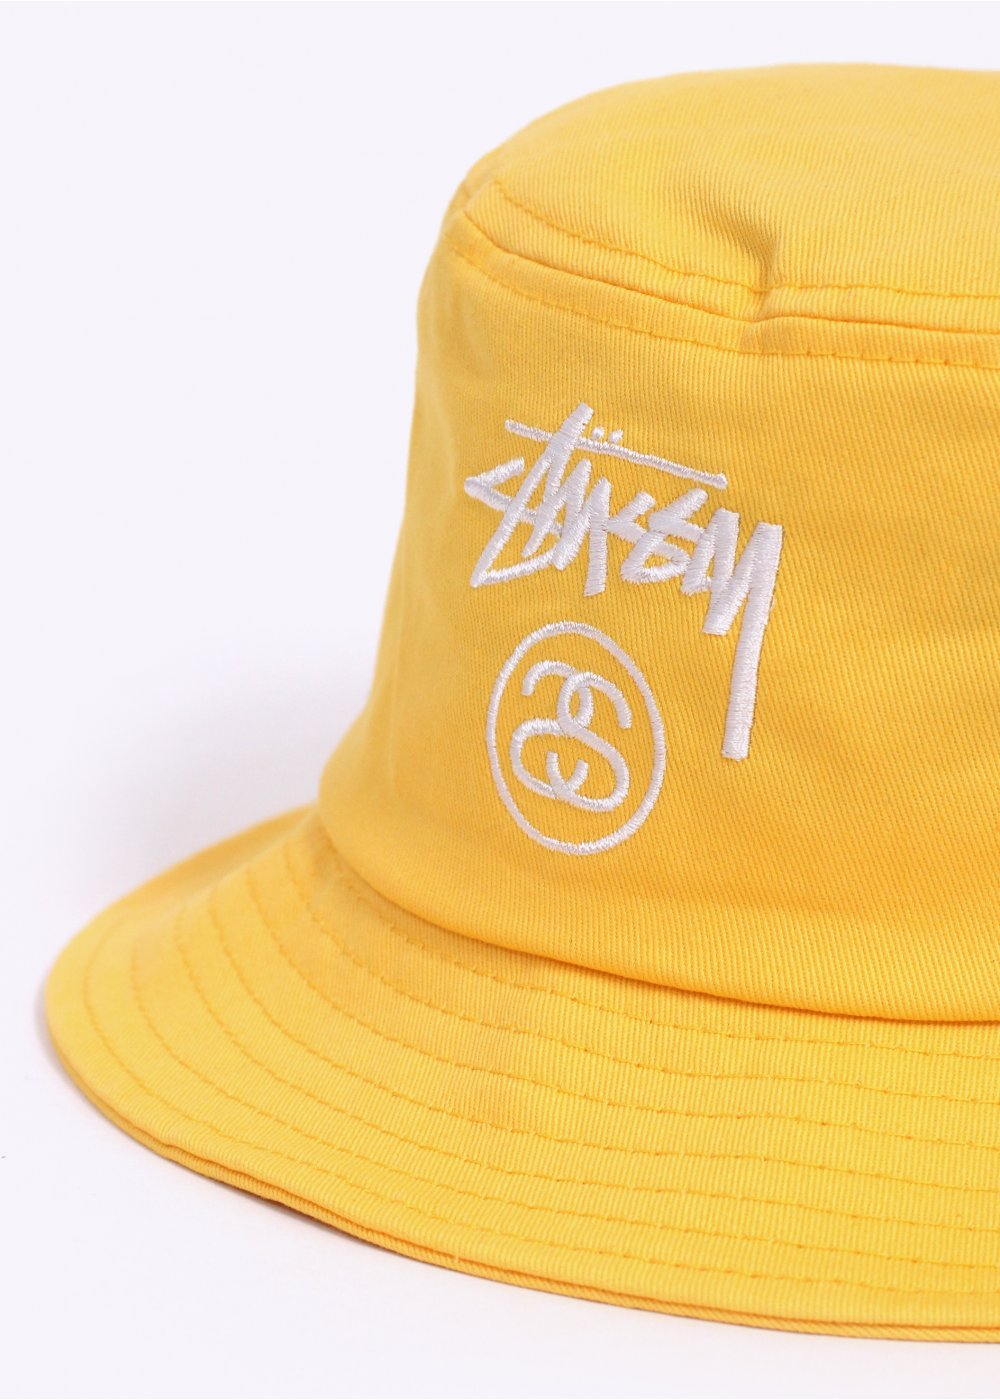 stussy bucket hat navy - HD 1000×1400